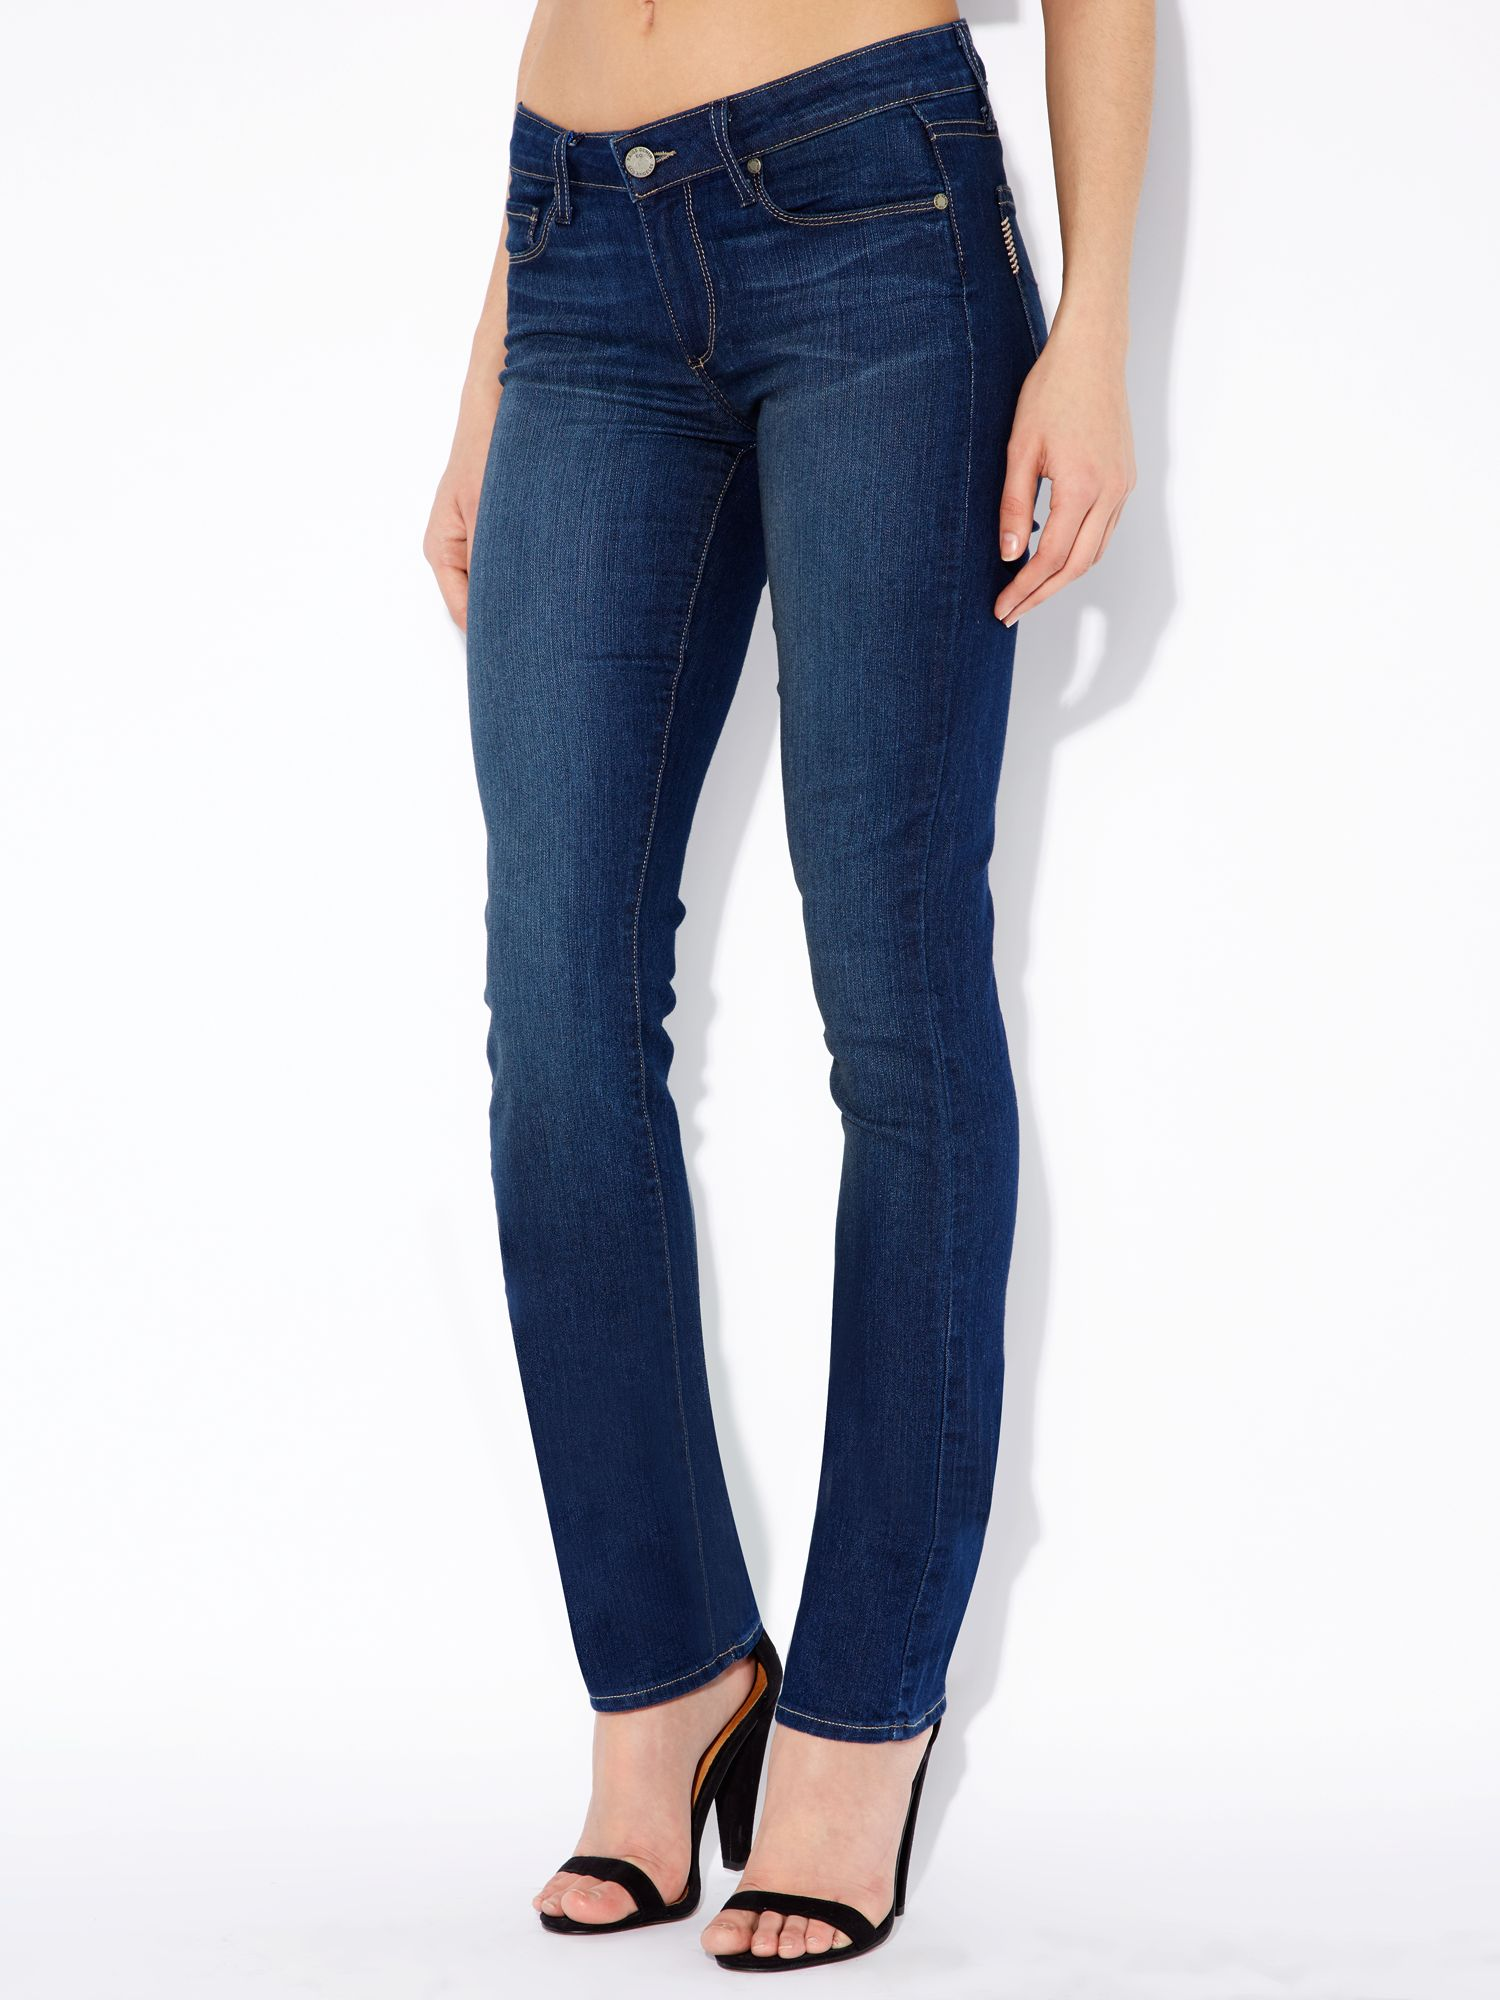 Skyline mid rise straight leg jeans in Finnley